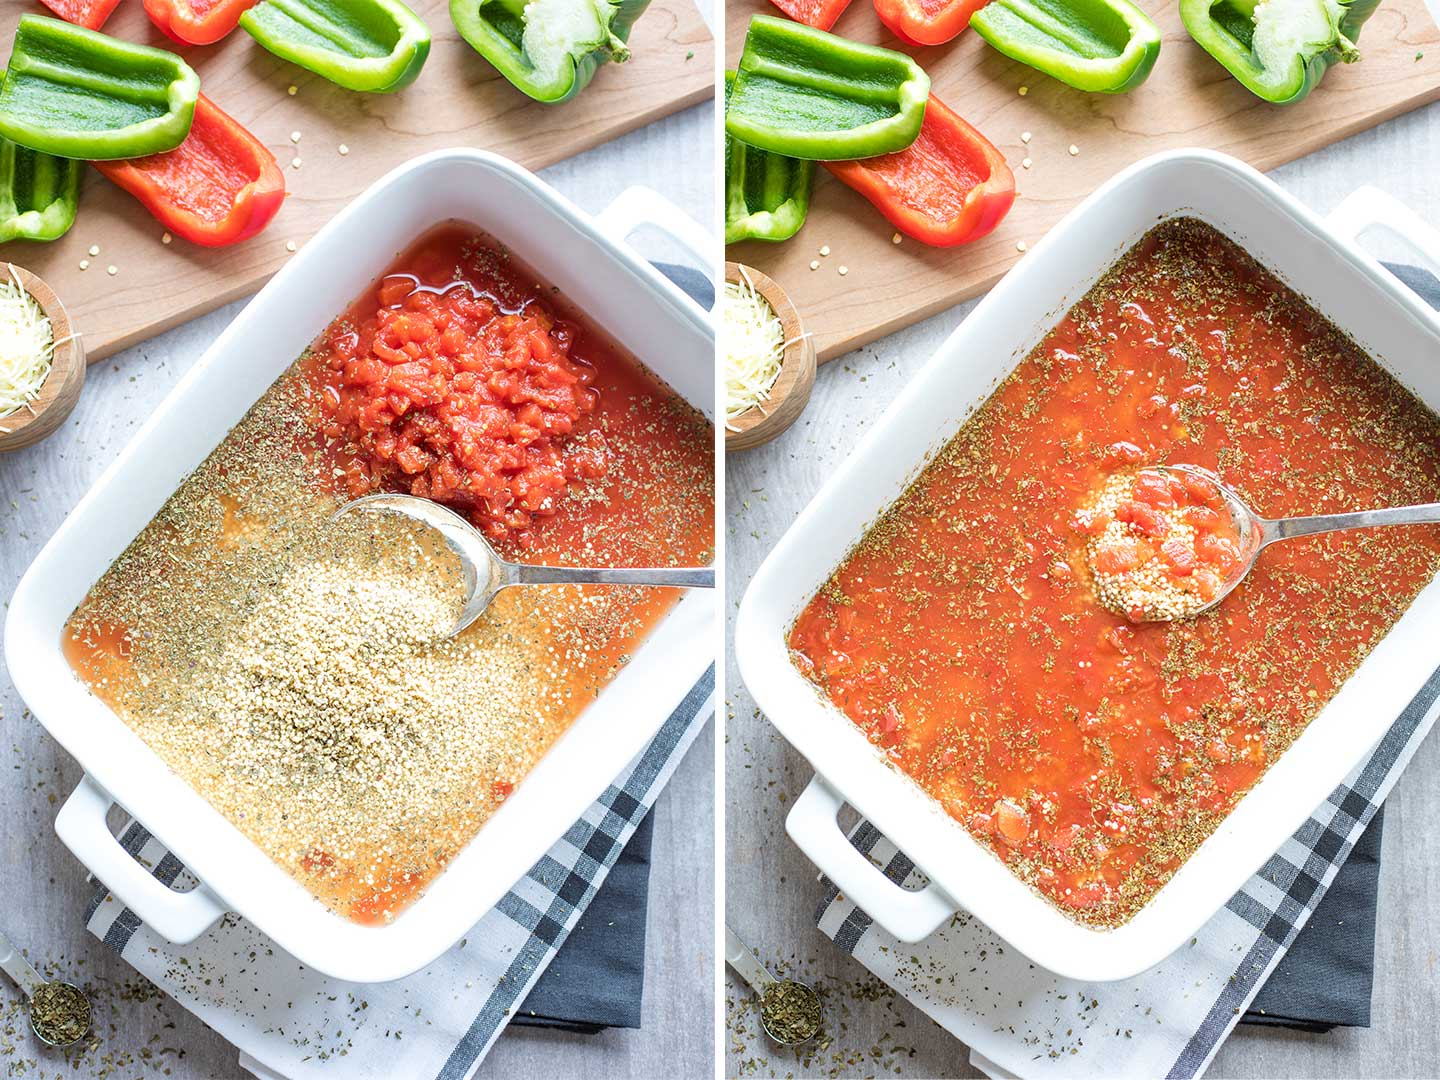 Collage of two side-by-side method photos showing how to stir the quinoa with the broth, tomatoes and spices, directly in the baking pan.